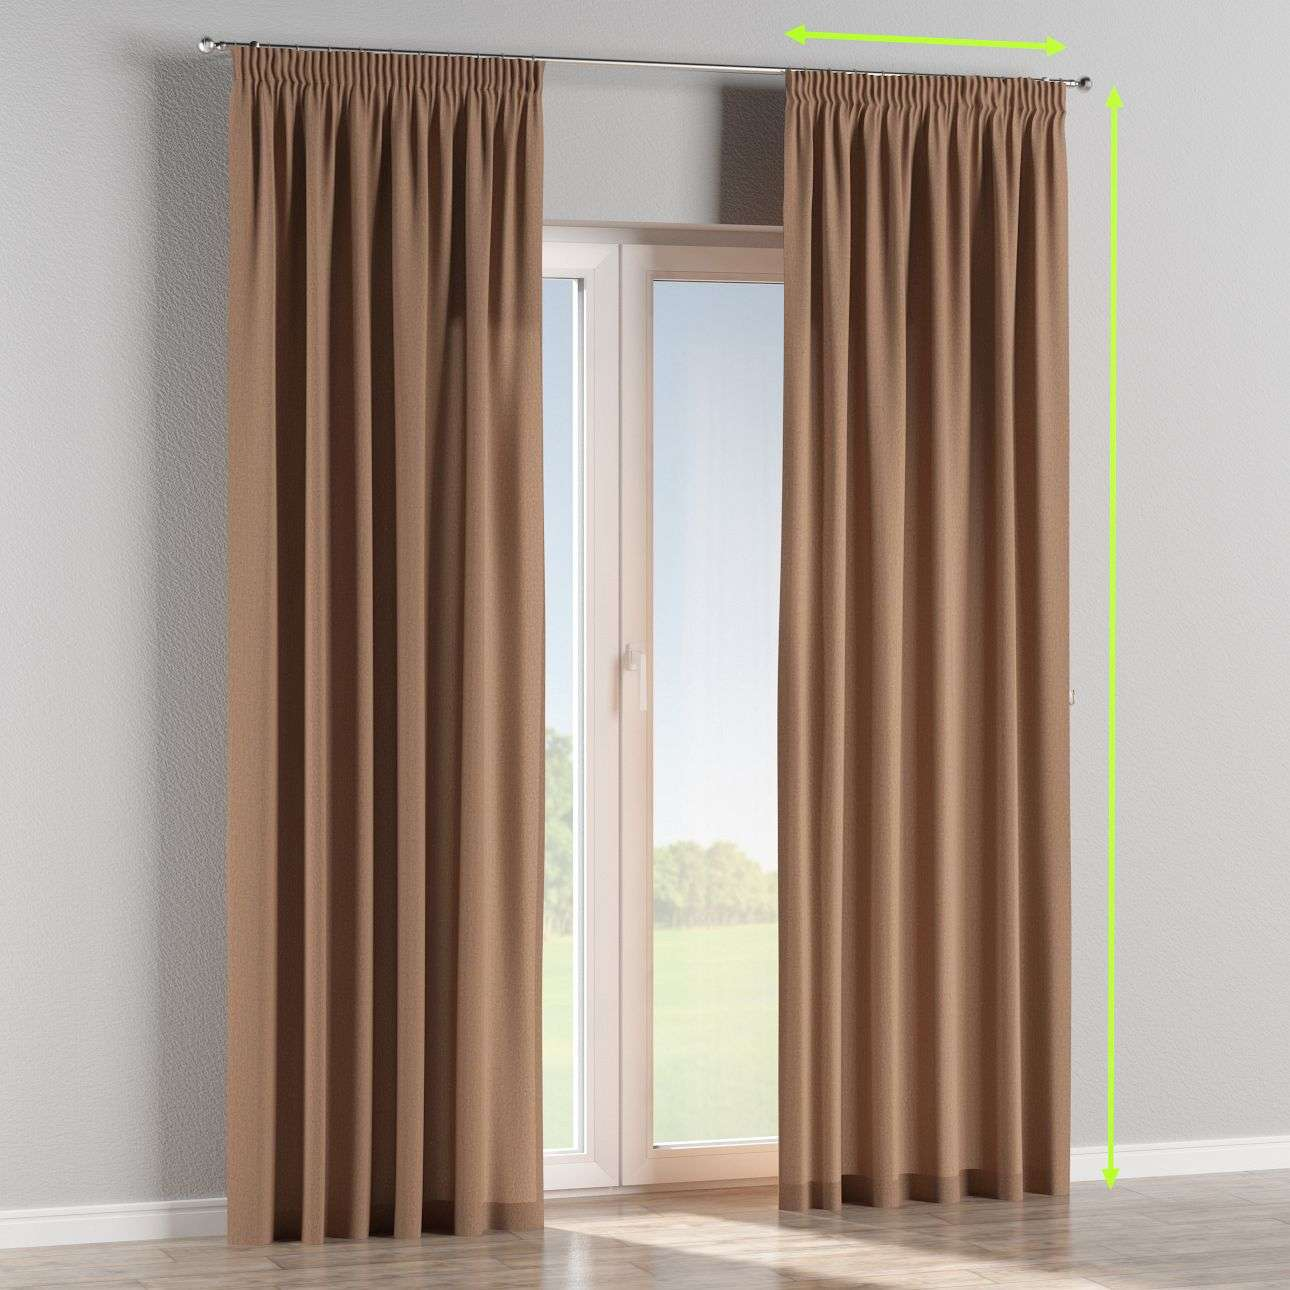 Pencil pleat lined curtains in collection Chenille, fabric: 702-21